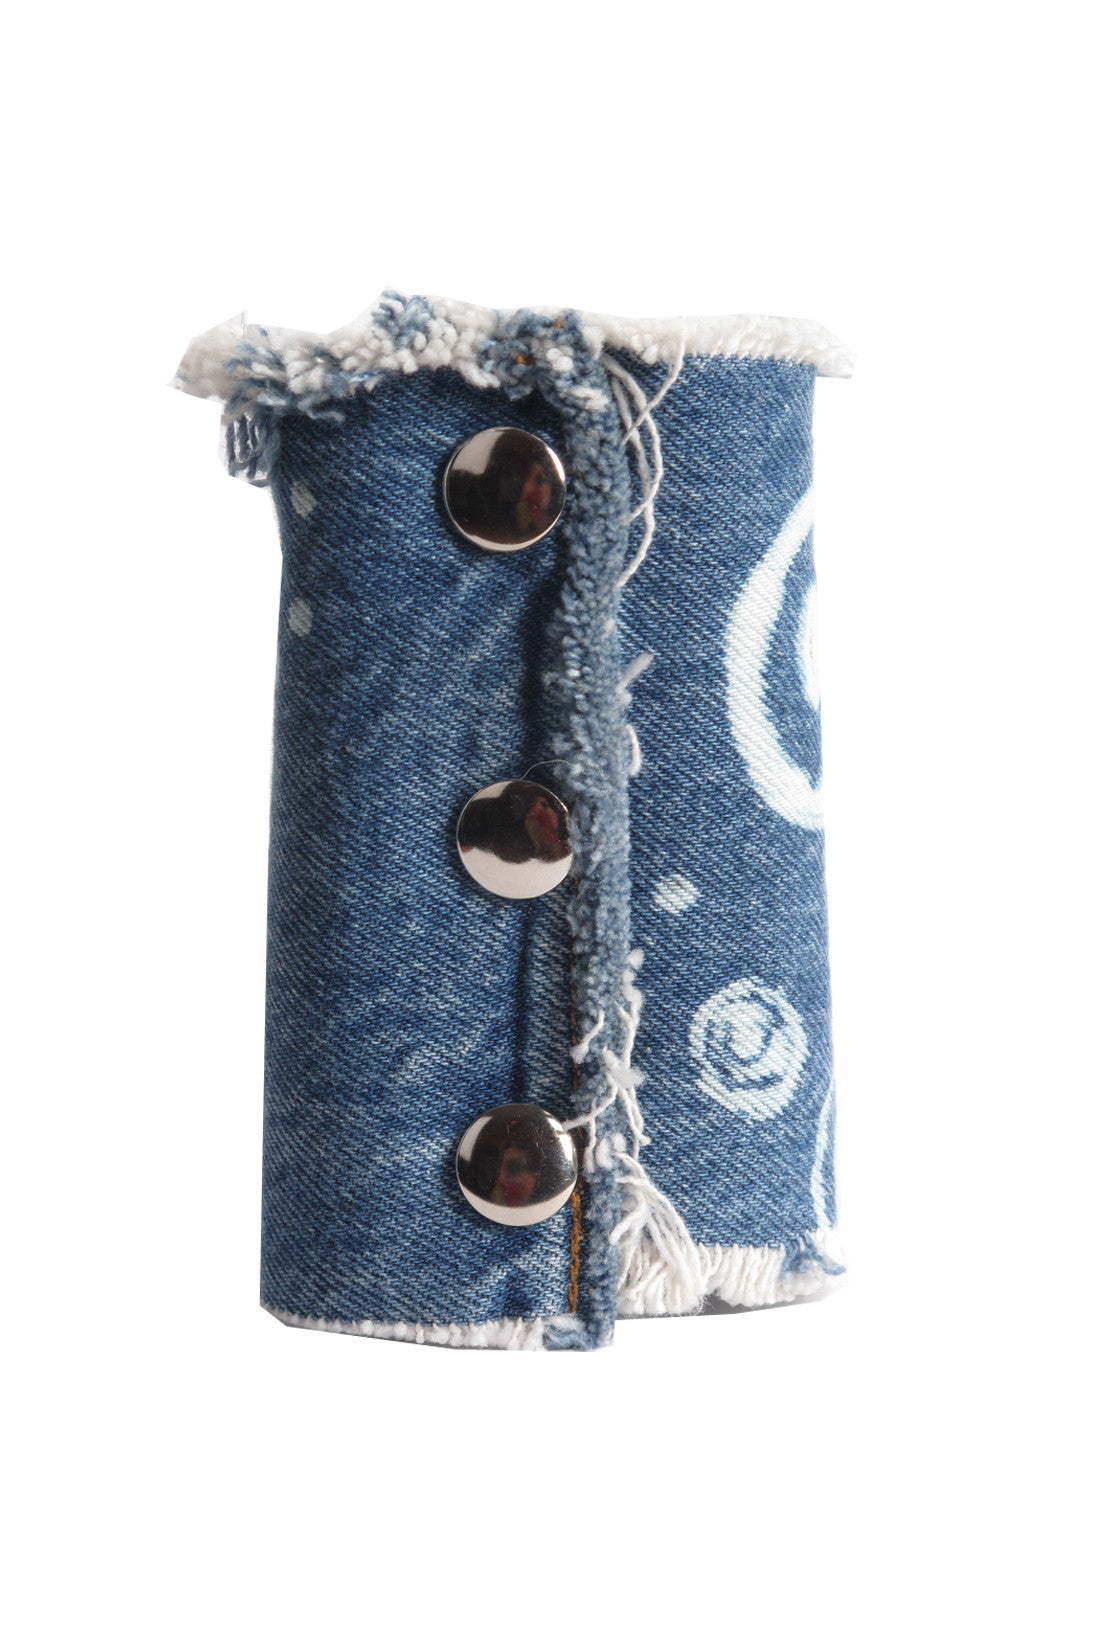 CIRCLE KEY WIDE DENIM CUFF- AVAILABLE FOR IMMEDIATE DELIVERY